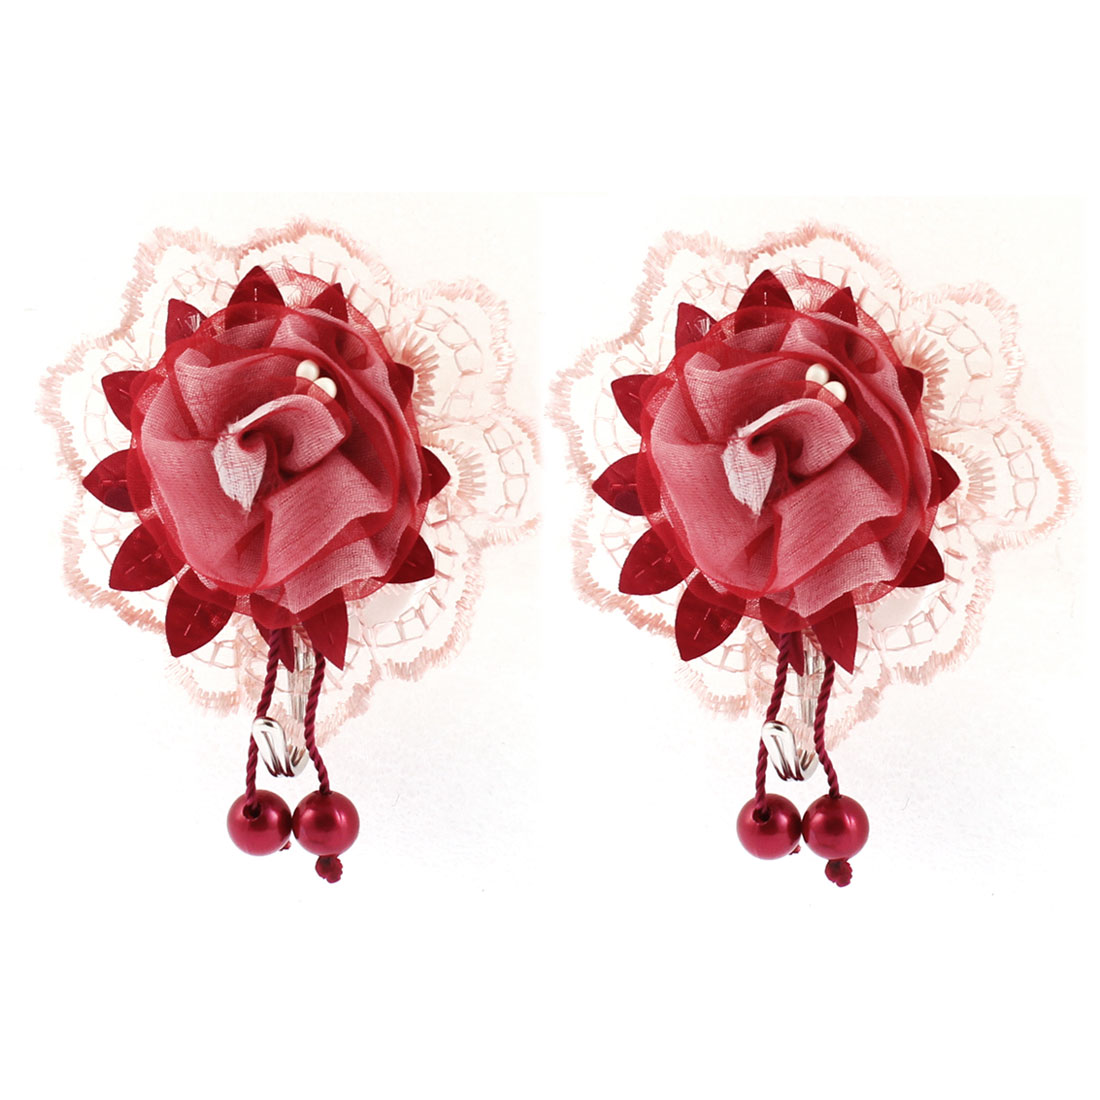 Home Towel Hat Bag Lace Edge Self-adhesive Hook Hanger Burgundy 2pcs